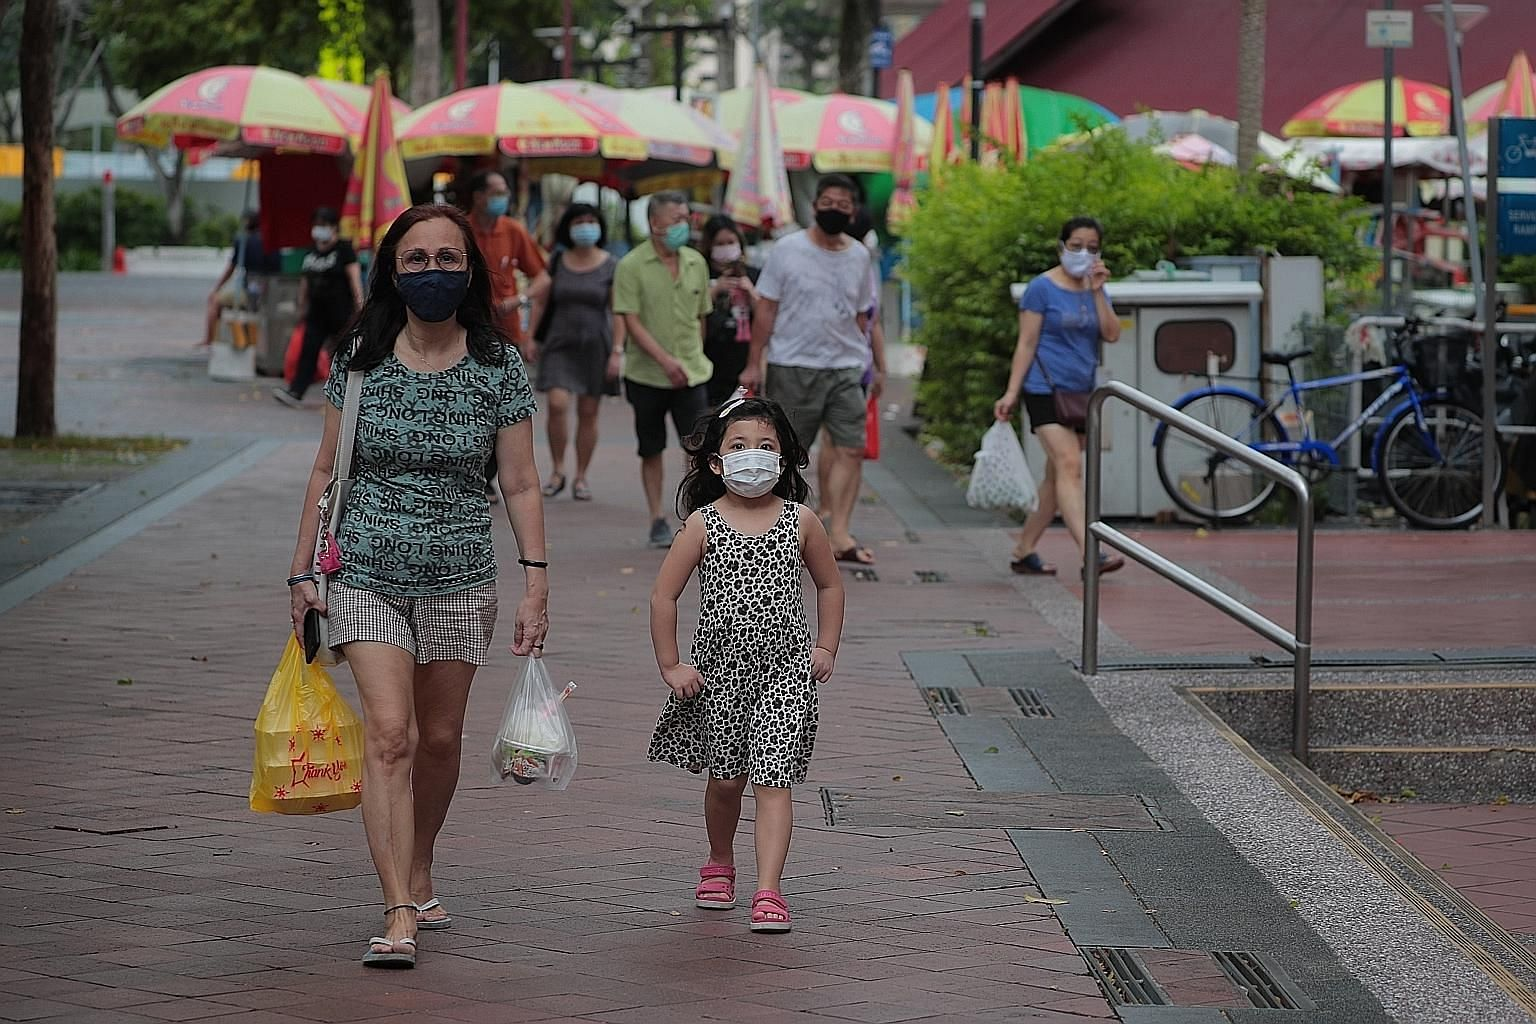 The task force tackling the Covid-19 outbreak has decided that face shields are not as effective as masks in reducing the risk of virus transmission, said Health Minister Gan Kim Yong. ST PHOTO: JASON QUAH